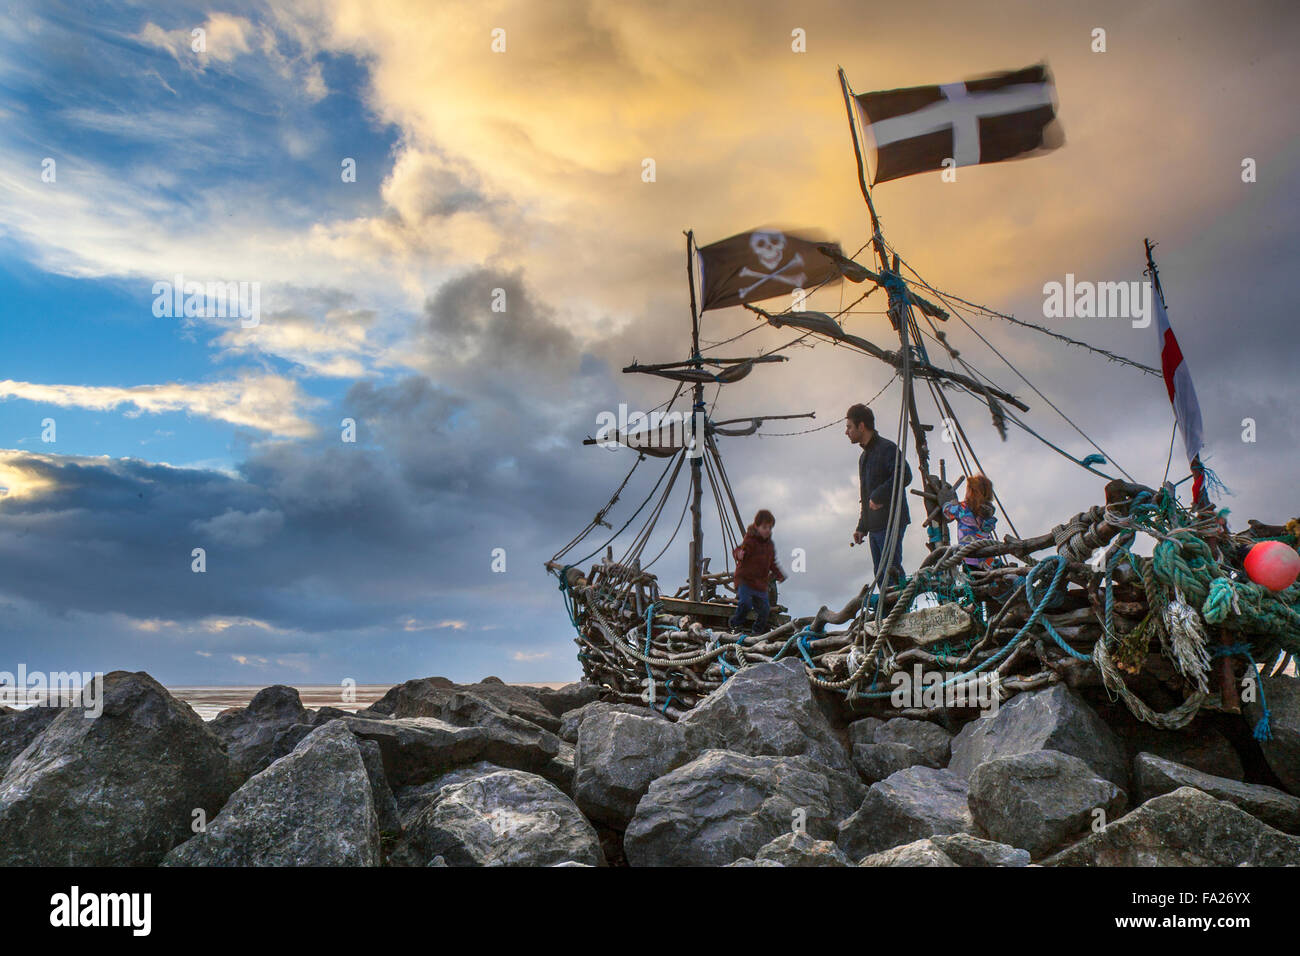 """Hoylake, Wirral, 20th December, 2015.   UK Weather.  Storm skies over the Driftwood Boat, a children art project.  The 'Grace Darling' a sculpture on Hoylake's shore. Hoylake's very own pirate ship named after Grace Darling who aged 22 rowed out in a storm with her father to help survivors of the SS Forfarshire, wrecked off the Farne Islands in 1838.  Since she was """"berthed"""" on the rocks by the new Hoylake Lifeboat station in Summer 2013, hundreds of children (and grown-ups) have clambered over Grace and enjoyed her close-up and from afar. Stock Photo"""